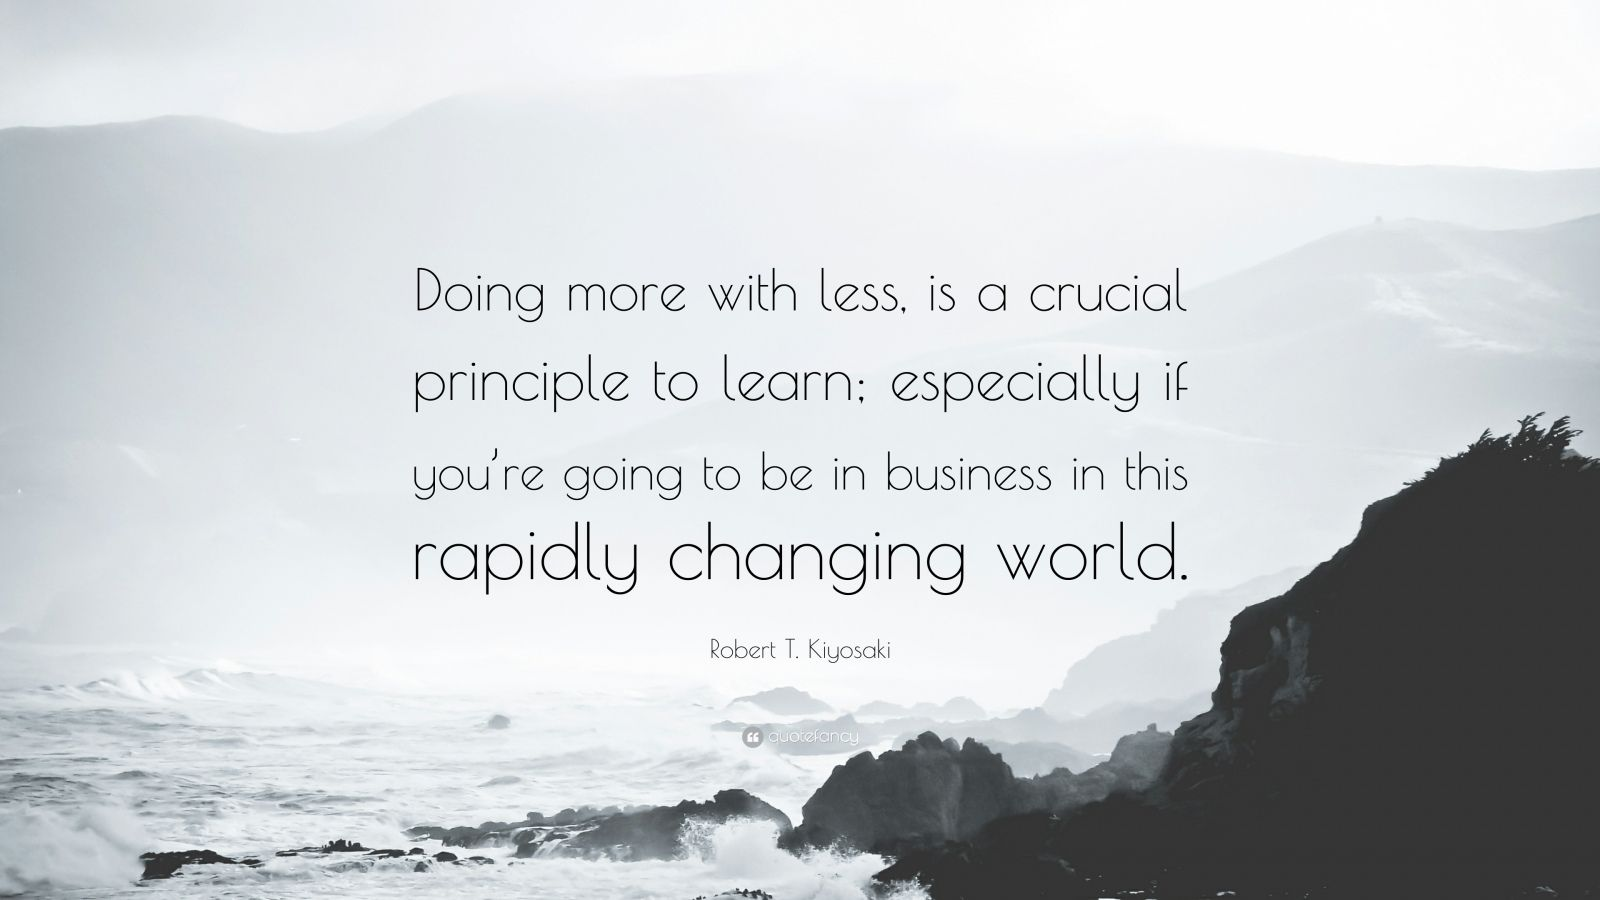 """Robert T. Kiyosaki Quote: """"Doing more with less, is a crucial principle to learn; especially if you're going to be in business in this rapidly changing world."""""""